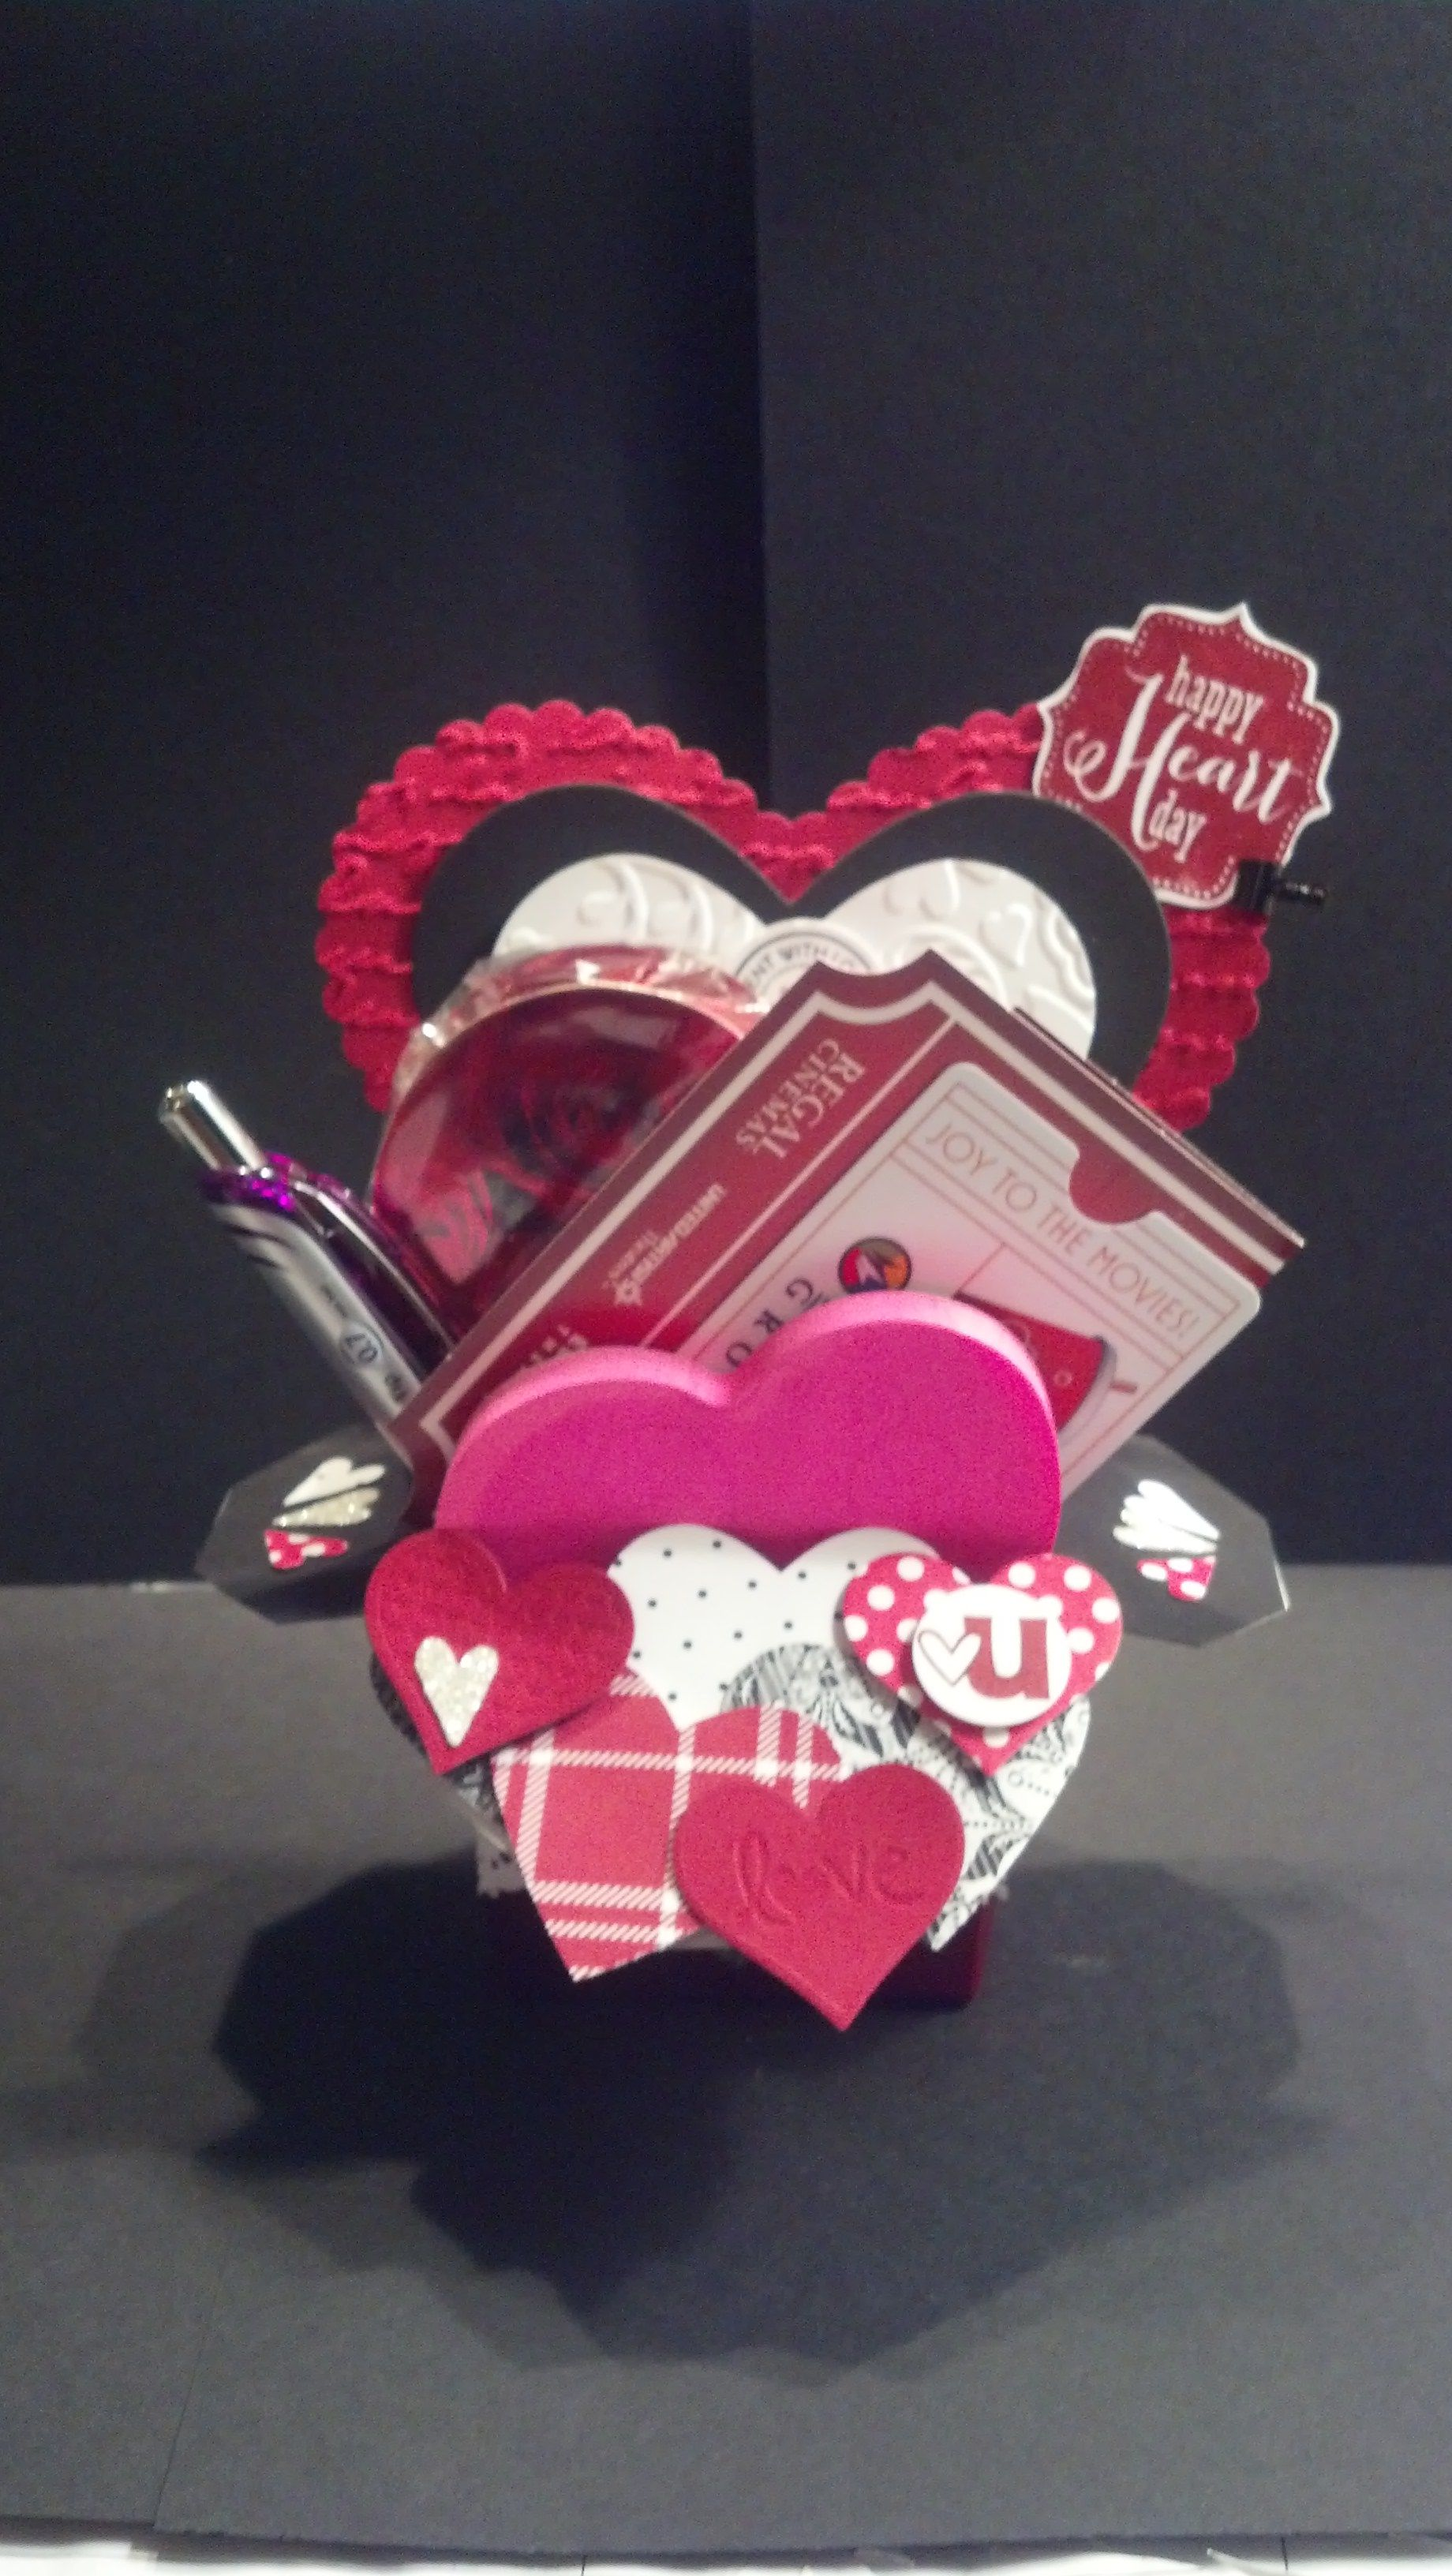 Exploding Valentine's Day Card Gift | Christmas ornaments ...